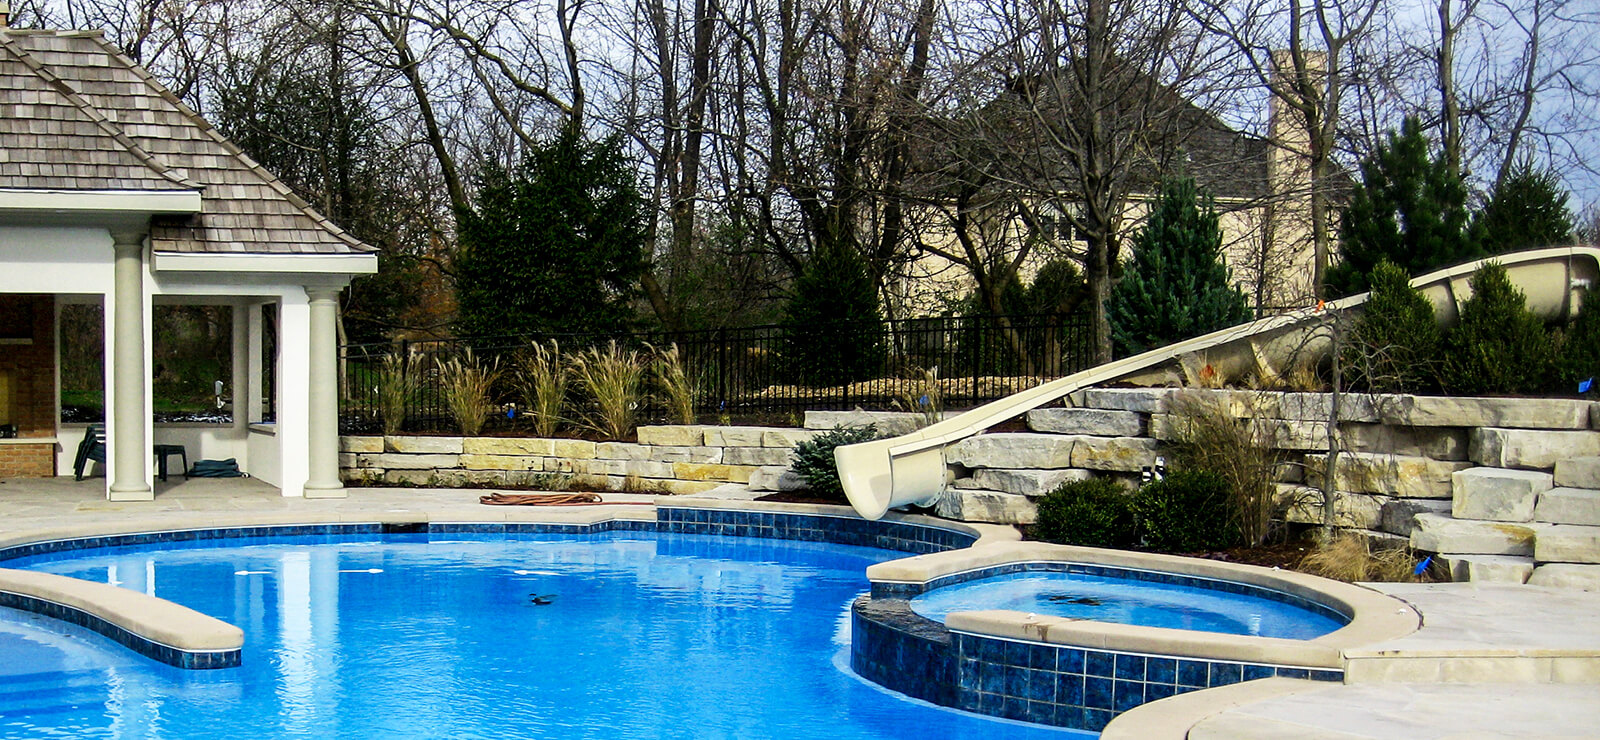 Mack Land Landscape Architects Wauconda Denver Hardscape with Pool